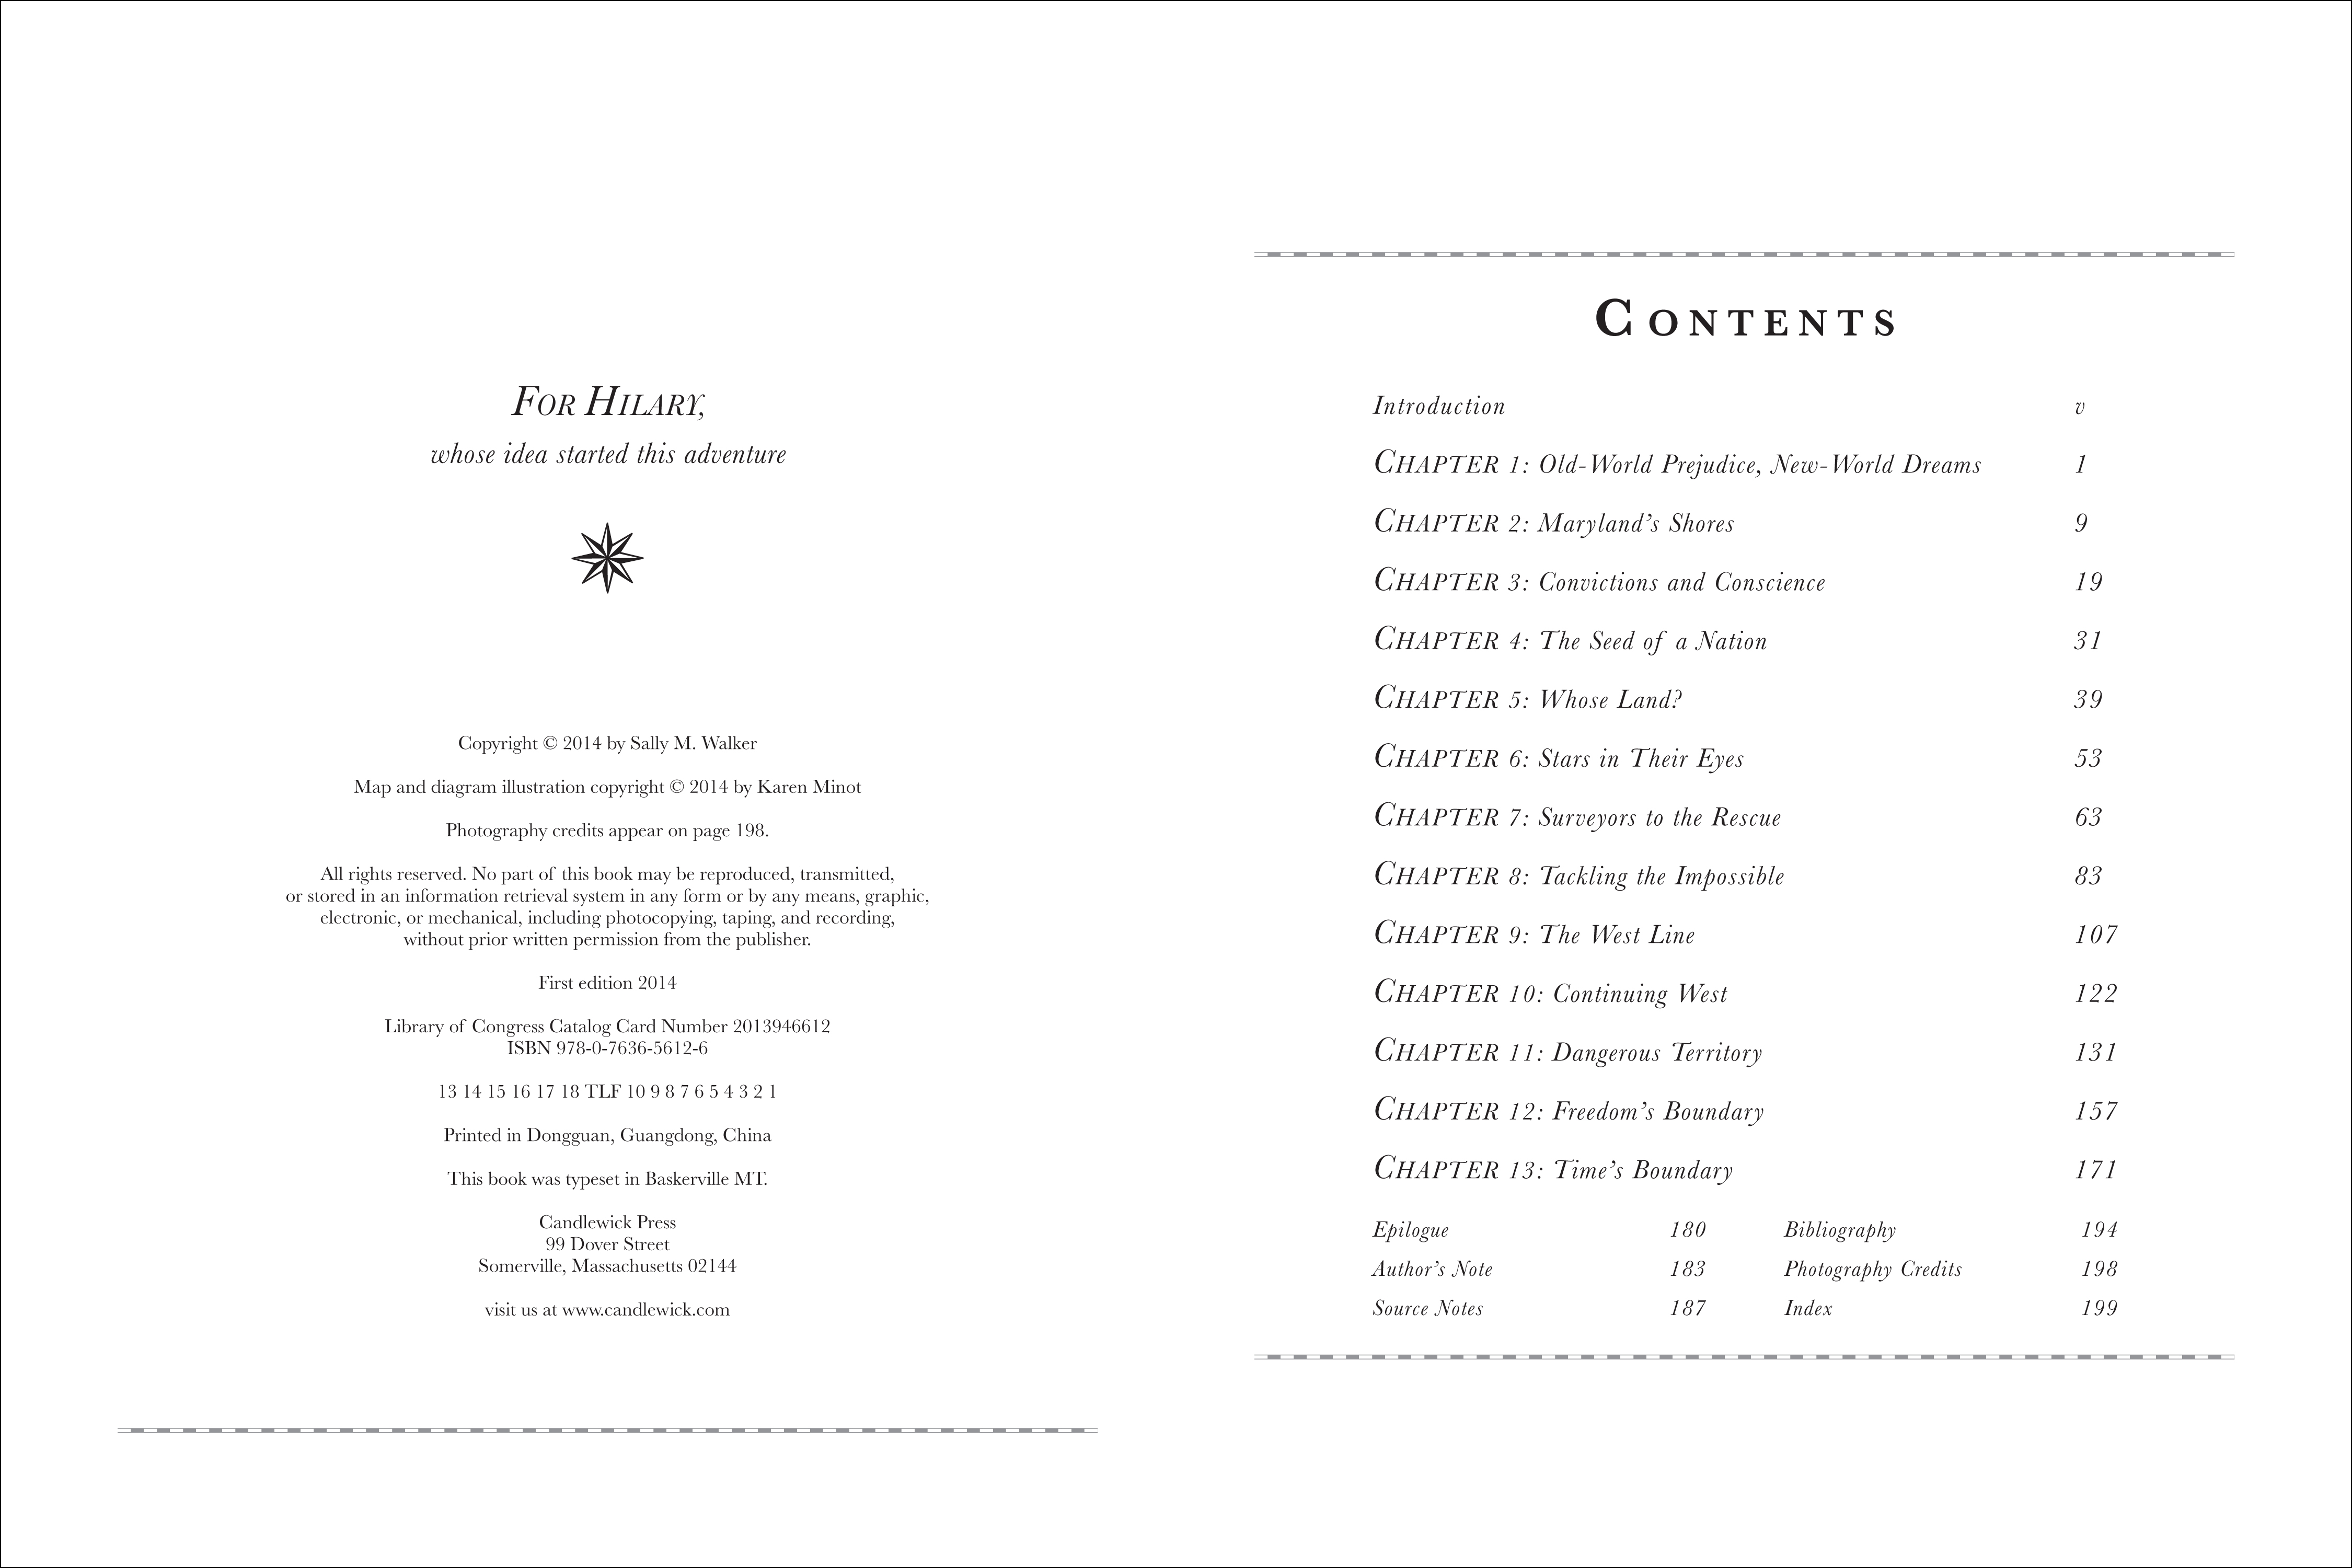 Table of contents for BOUNDARIES